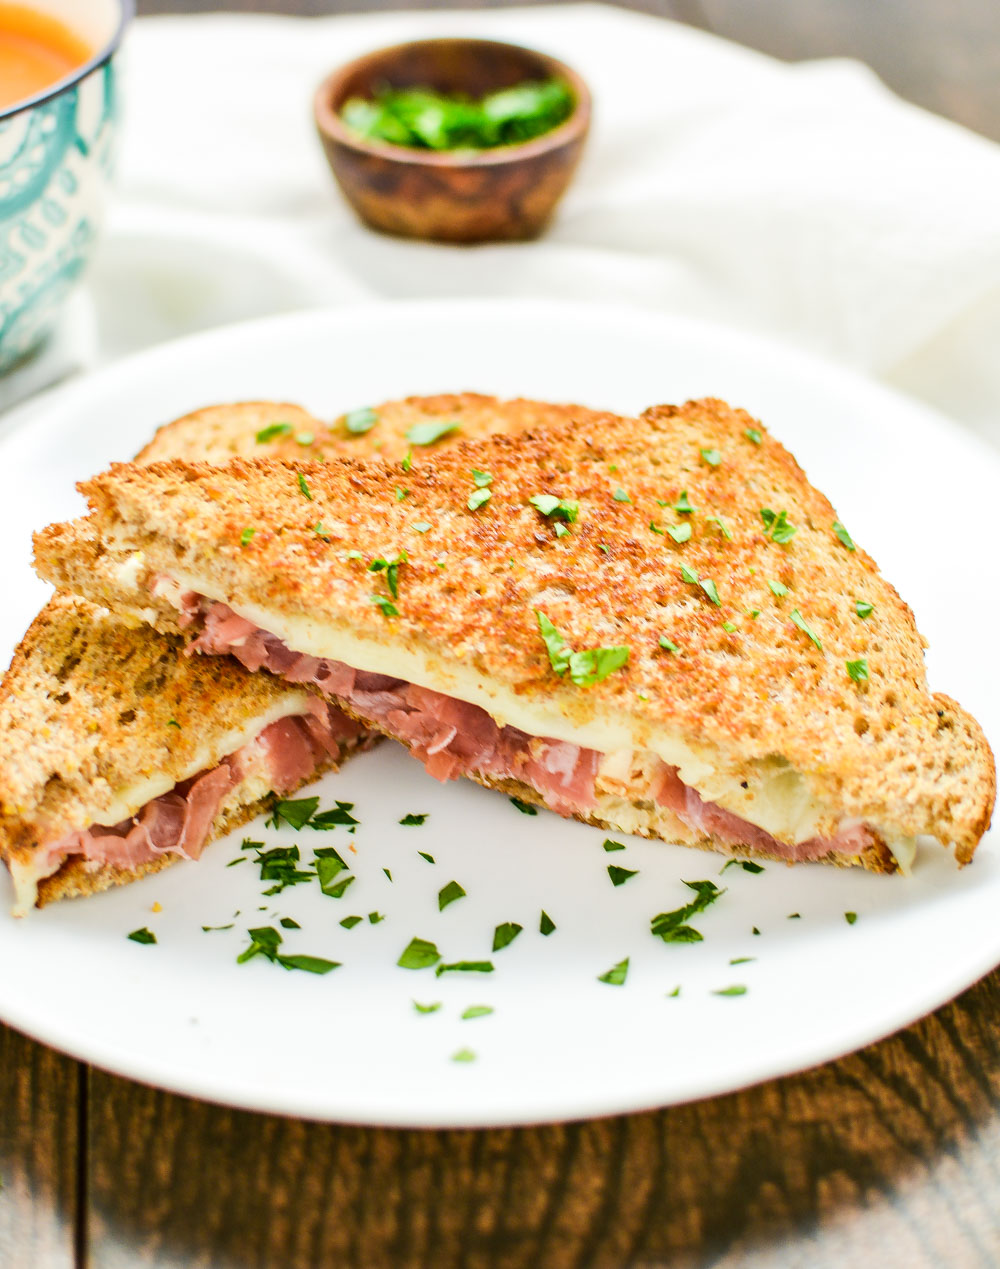 Grilled cheese is taken to the next level with this chicken cordon bleu grilled cheese!